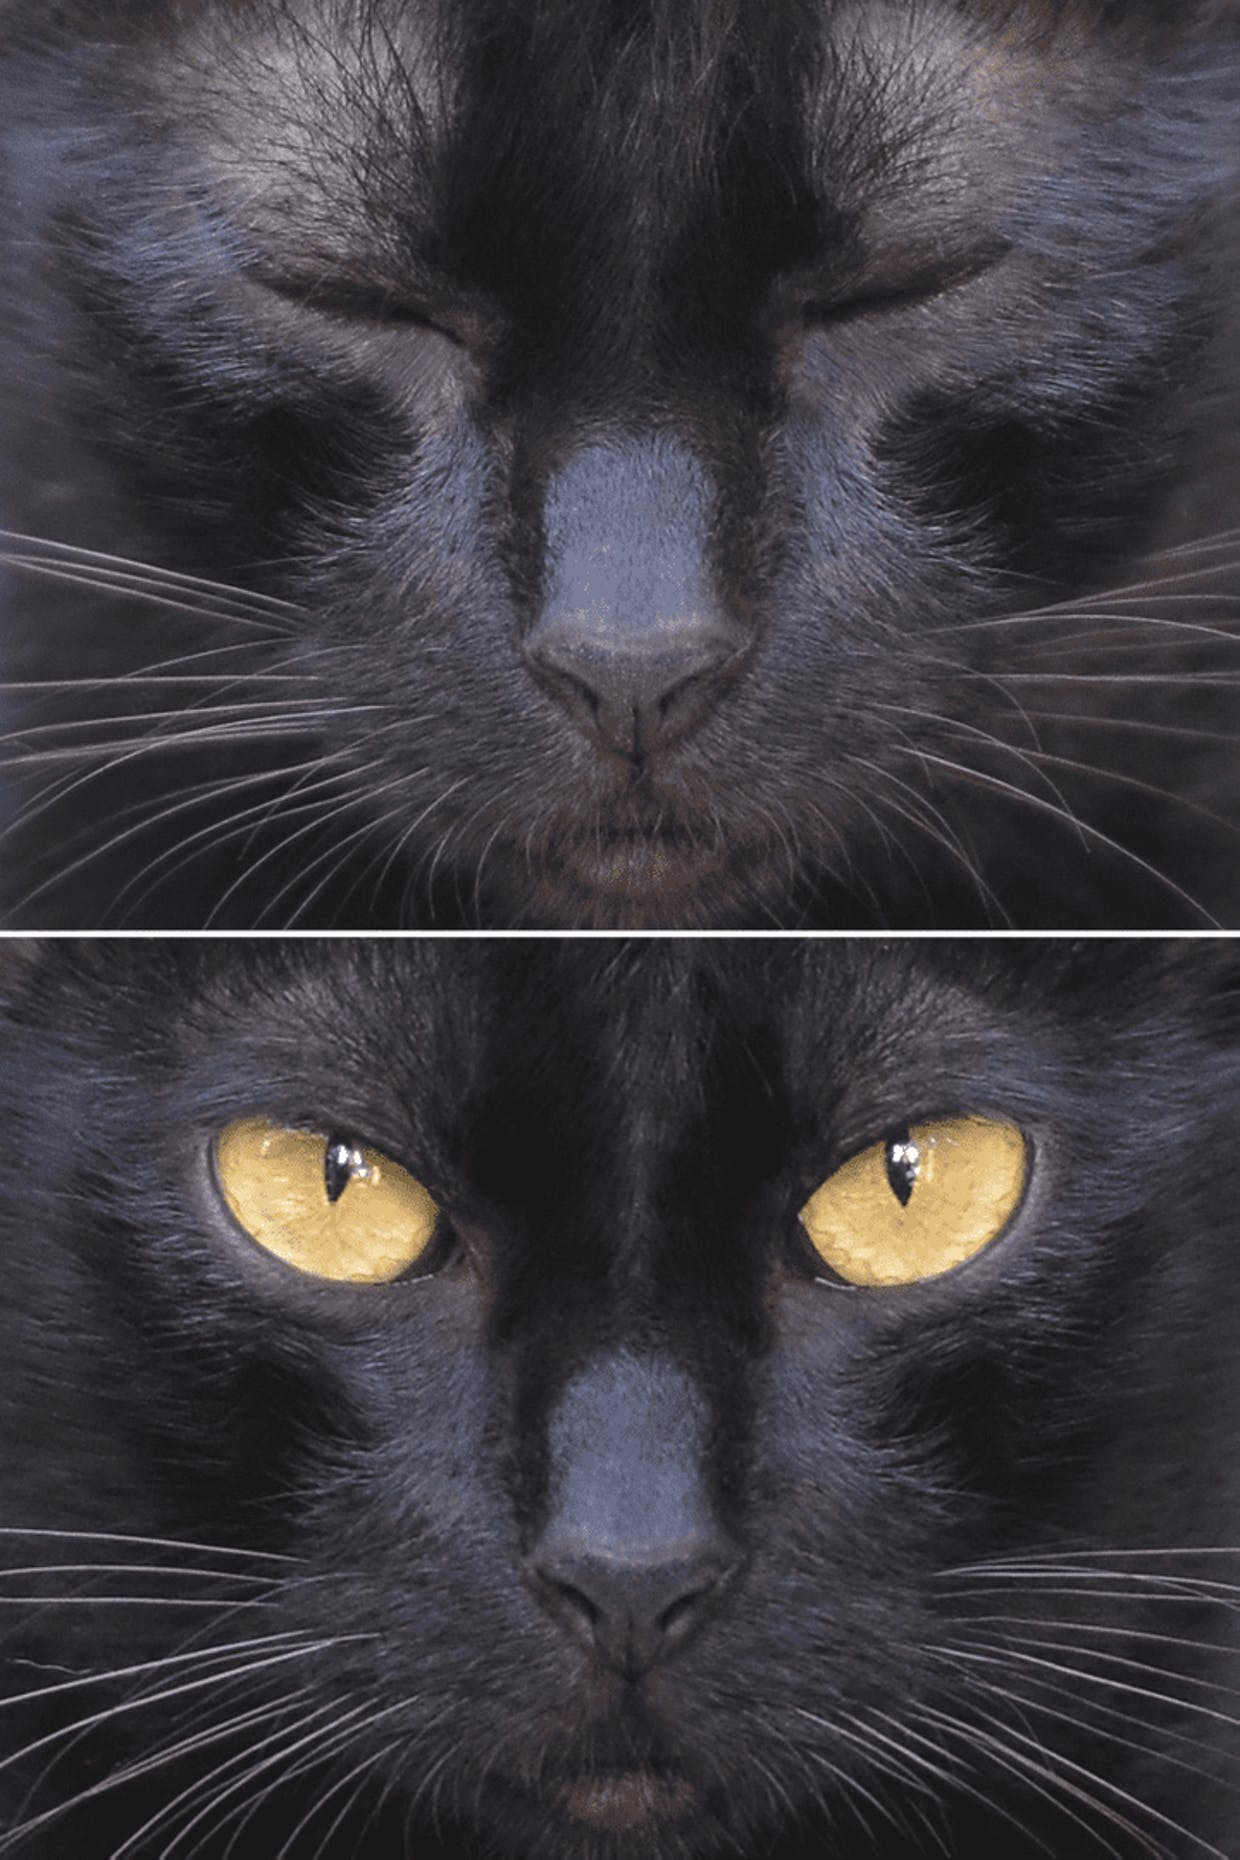 Original available natural light portrait photography of a Philippine black tiger cat by nelson gerundo taken on September 15, 2021 (Wednesday) at 9:55:43 AM inside the CLSU main campus.